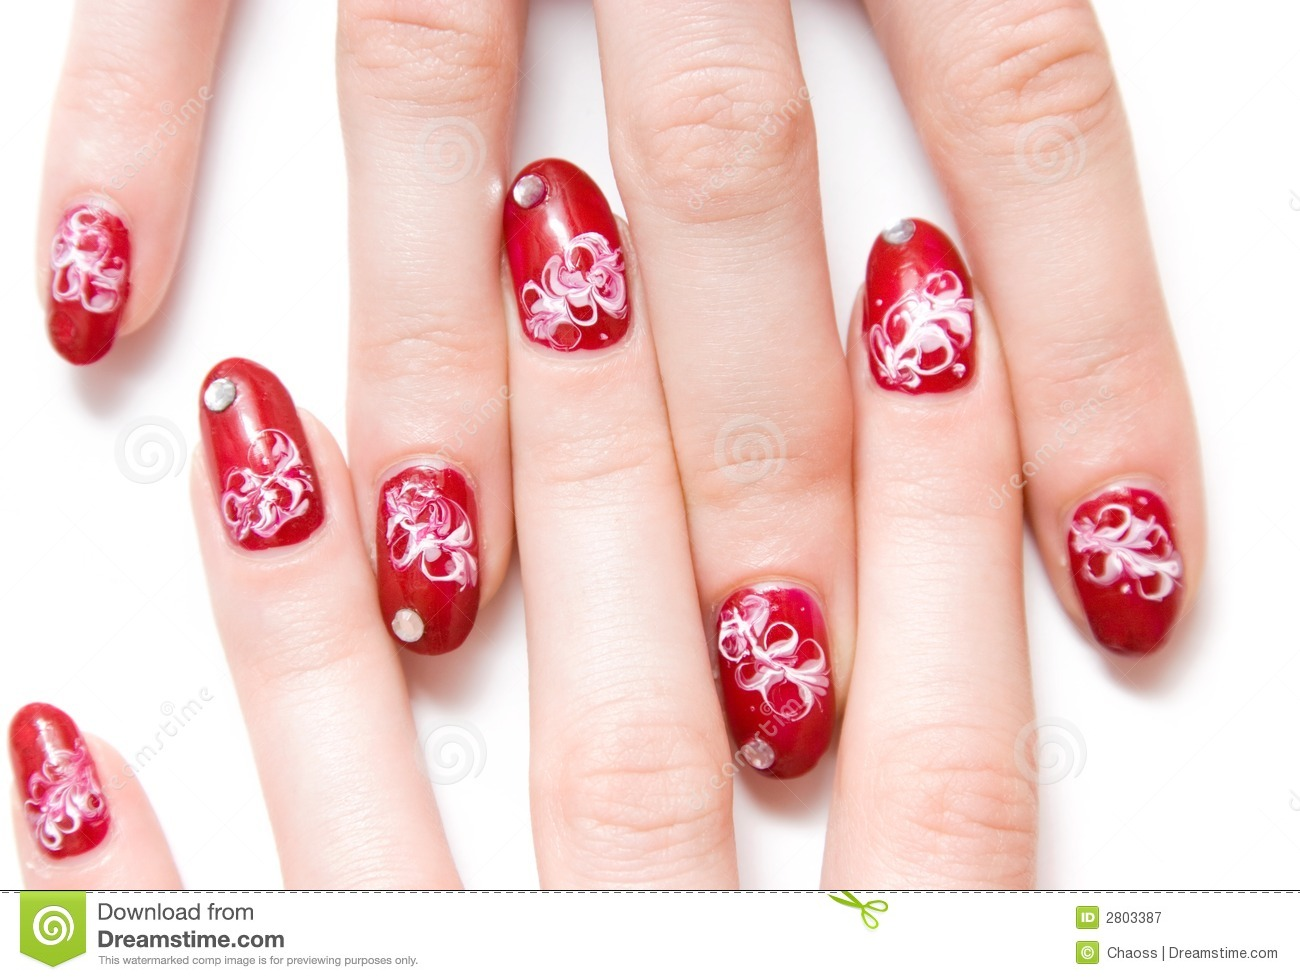 Fingers With Decorated Nails Stock Image